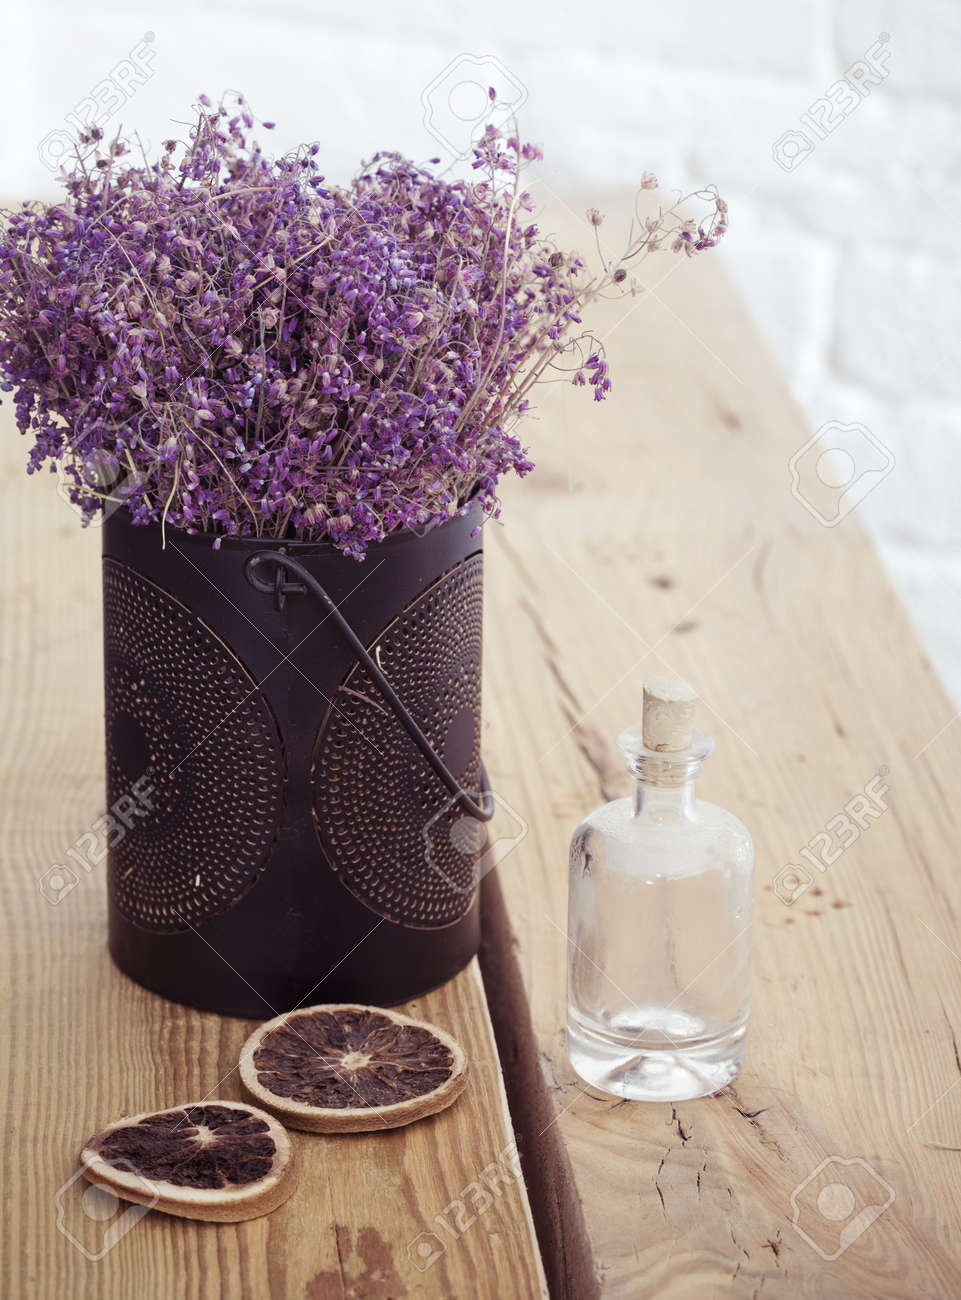 Rustic Home Decor Provence Style Lavender Bouquet Of Dried Stock Photo Picture And Royalty Free Image Image 32615738